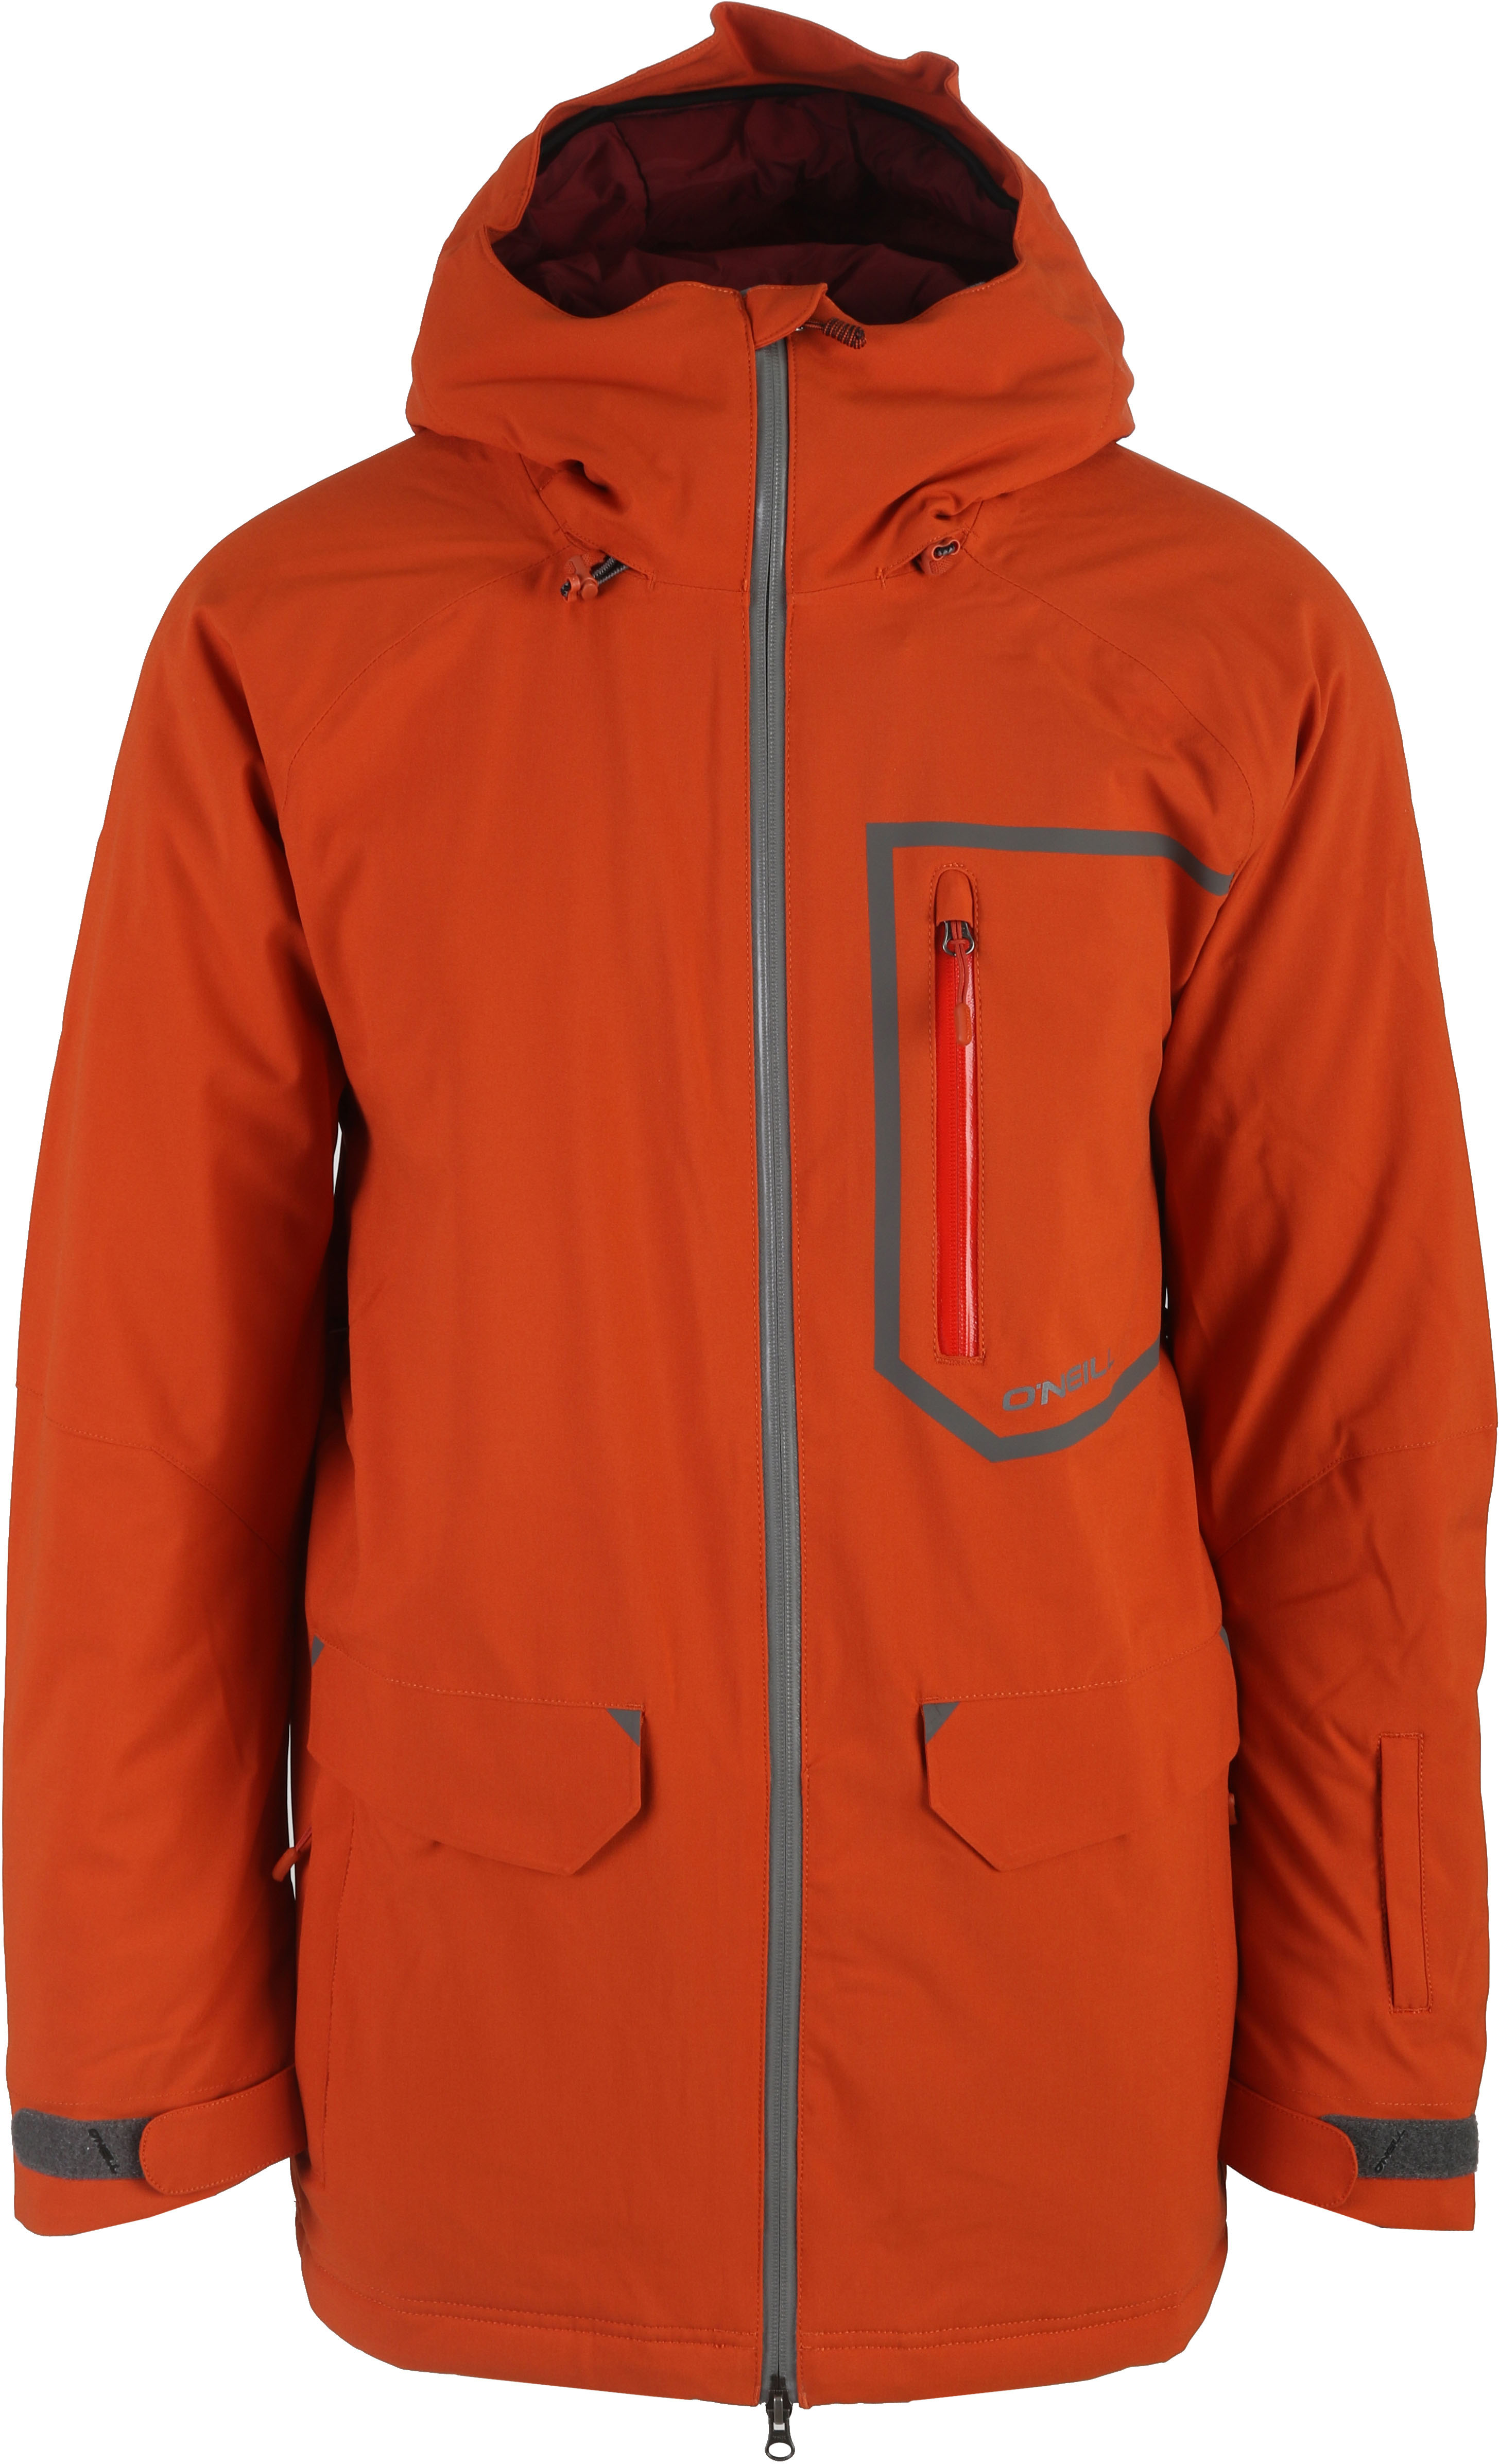 oneill heat 2 jacket review the good ride